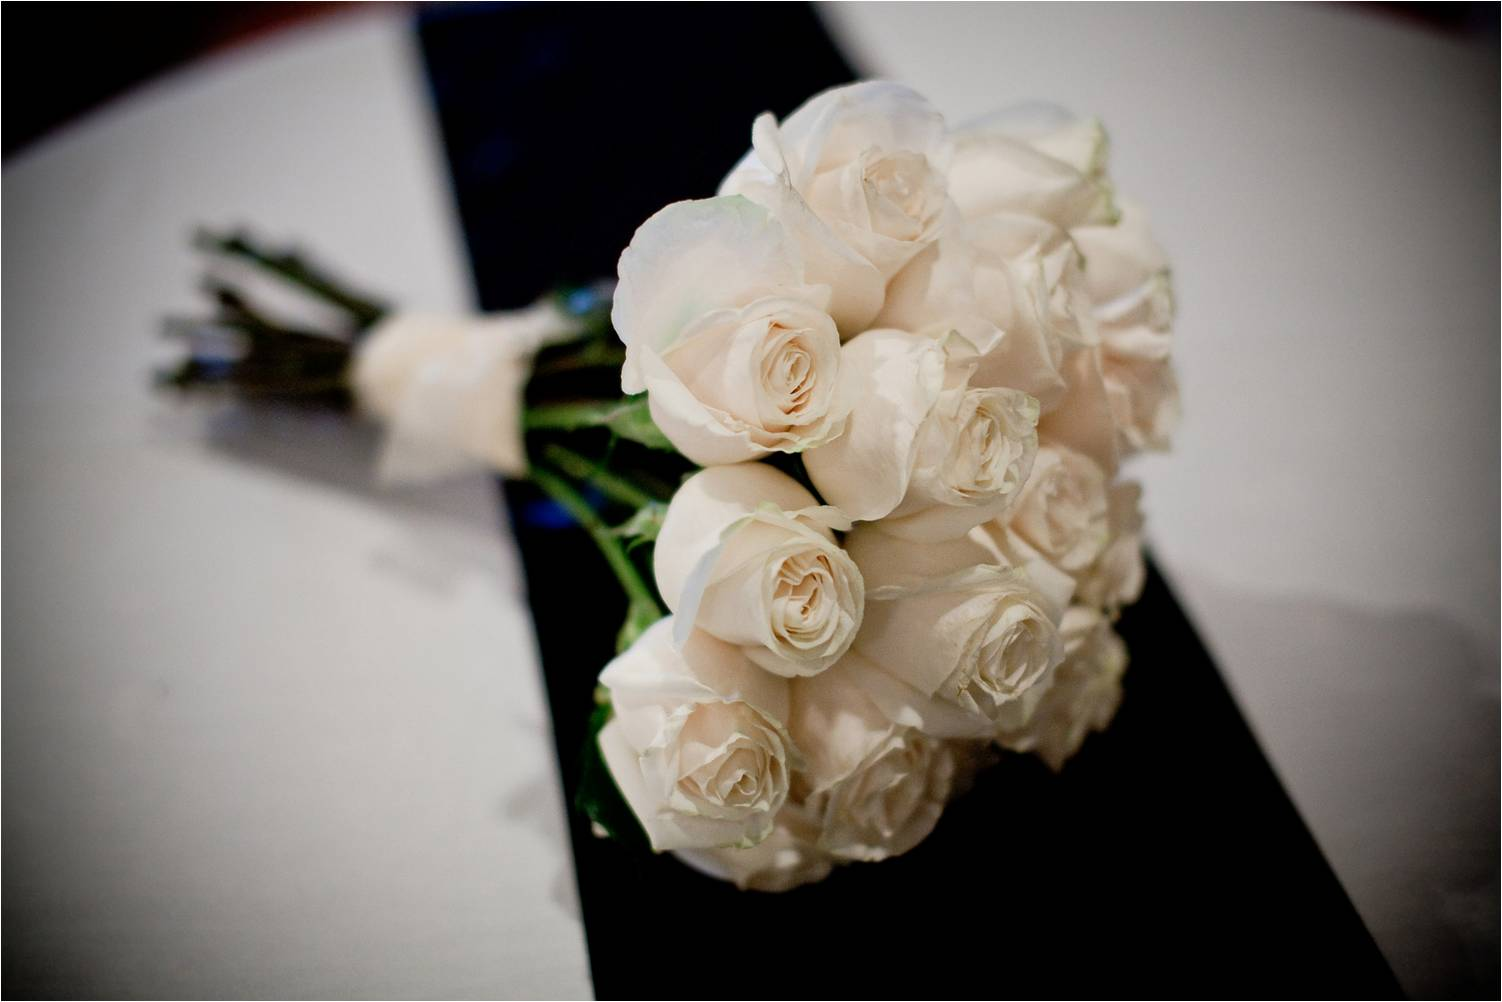 How Long Should Bridal Bouquet Stems Be : Long stem flowers bouquet images